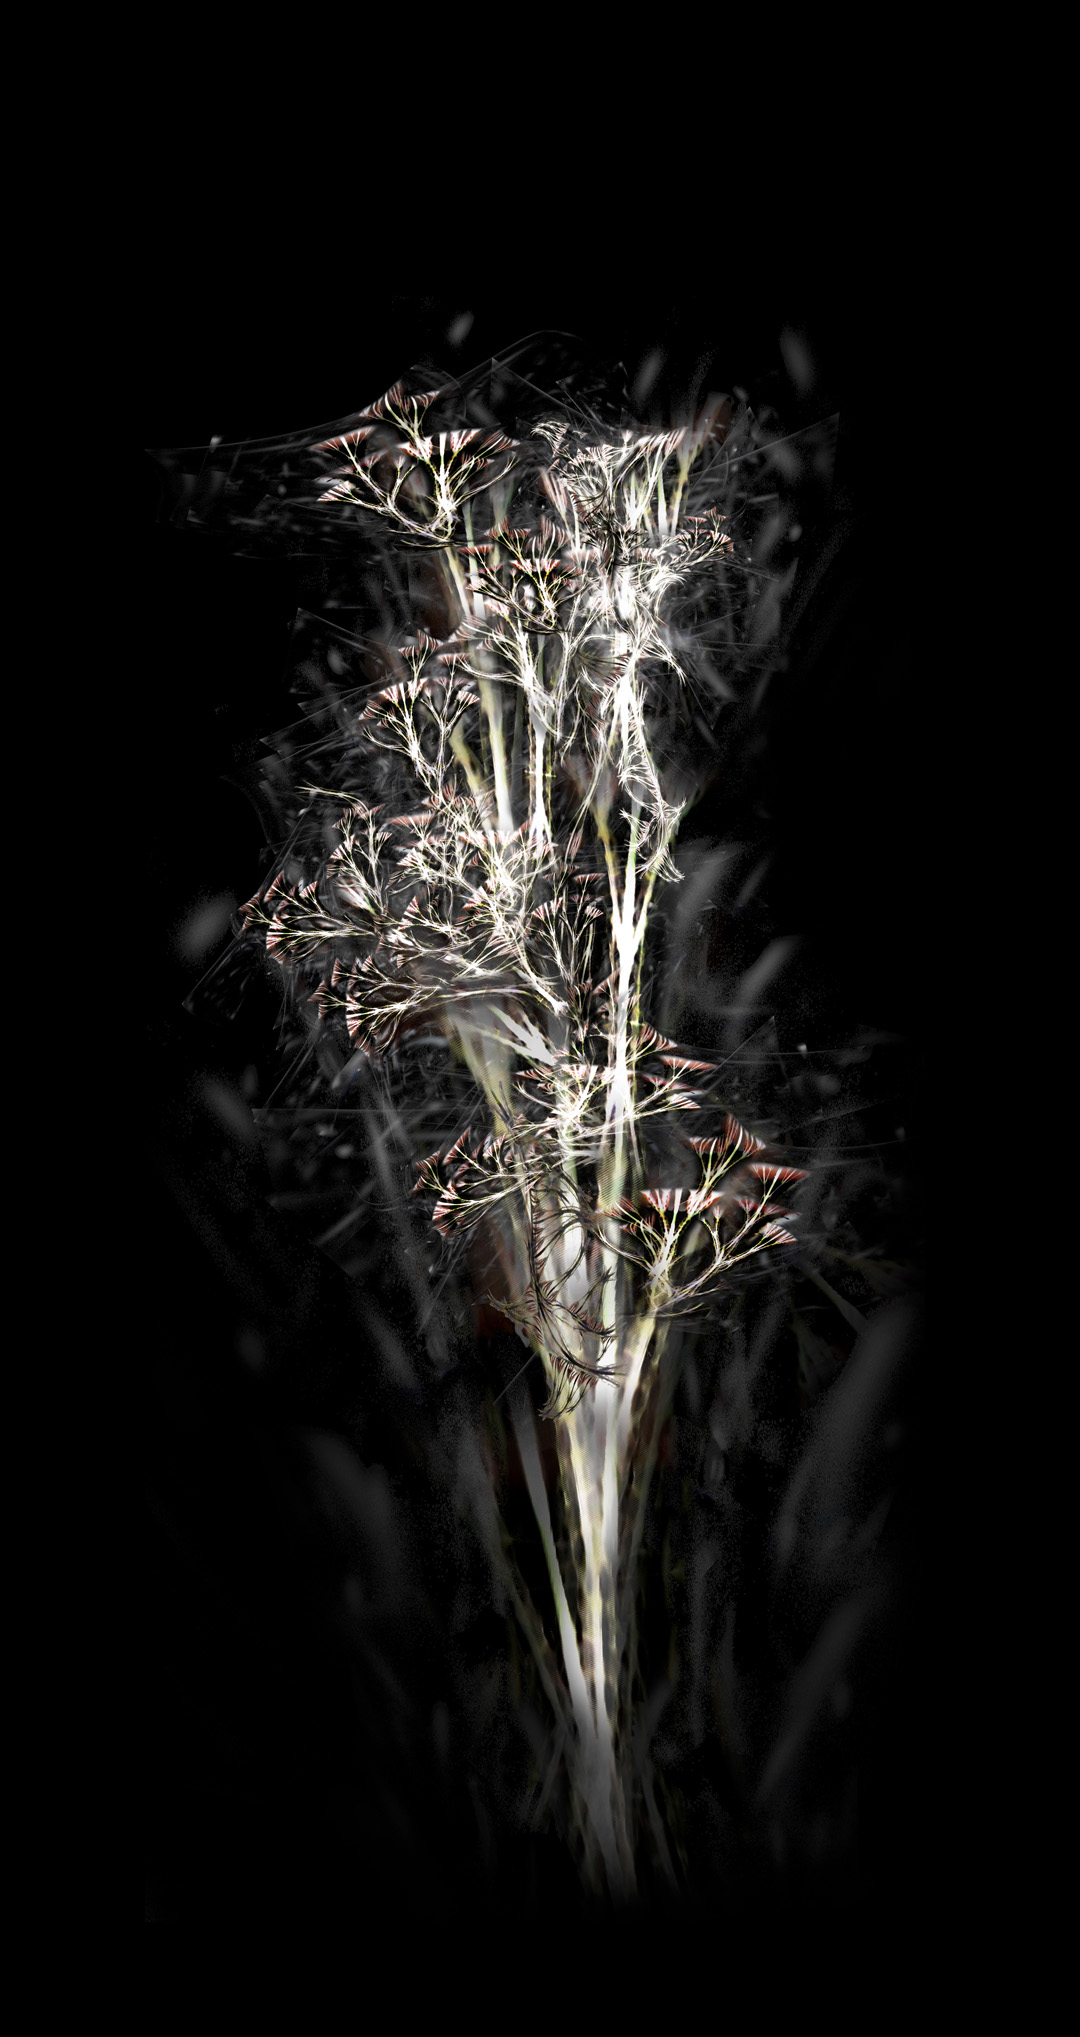 Bone tree - archival pigment prints - rohini devasher 2013 (1)